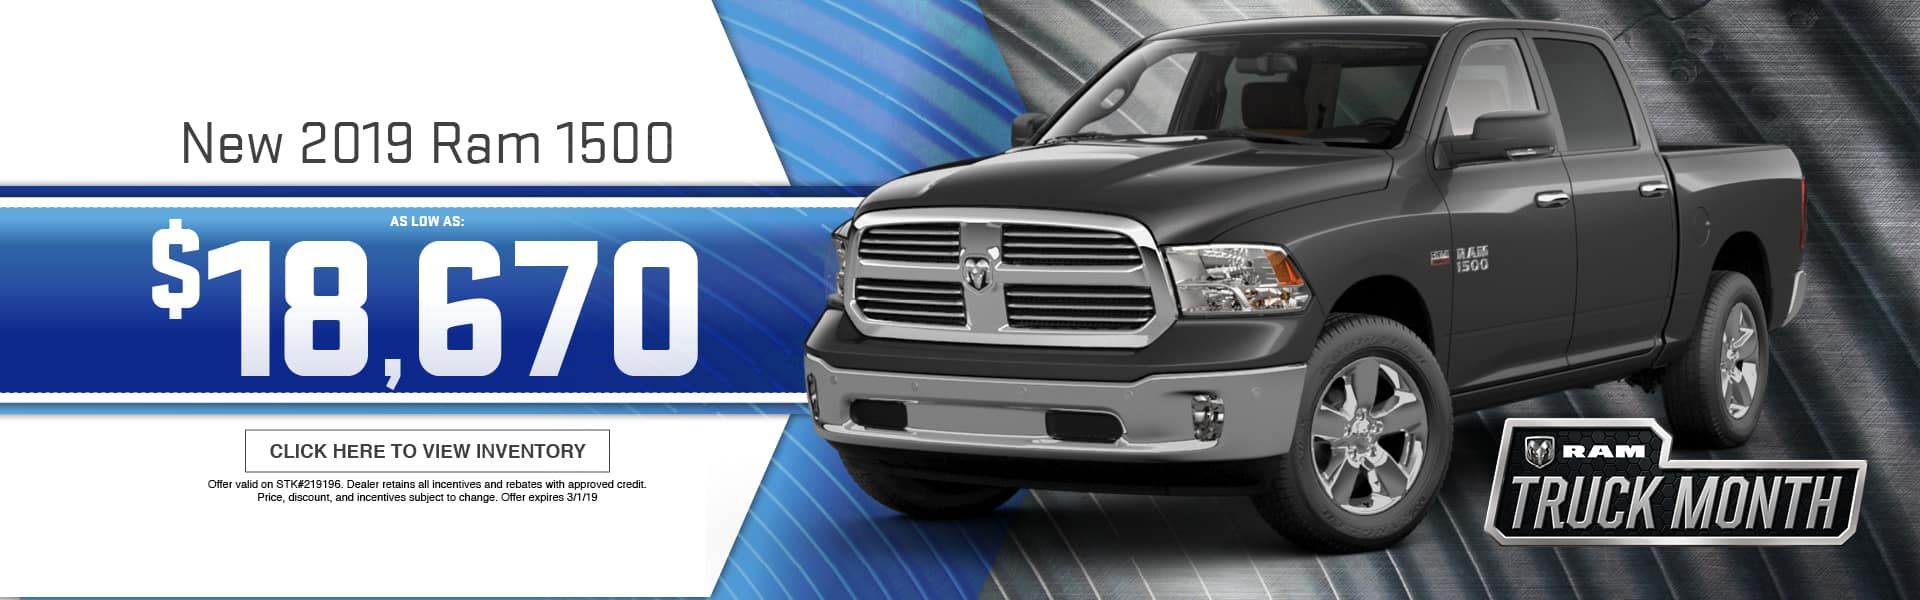 2019 RAM 1500 Special at Thomson RAM in Thomson, GA